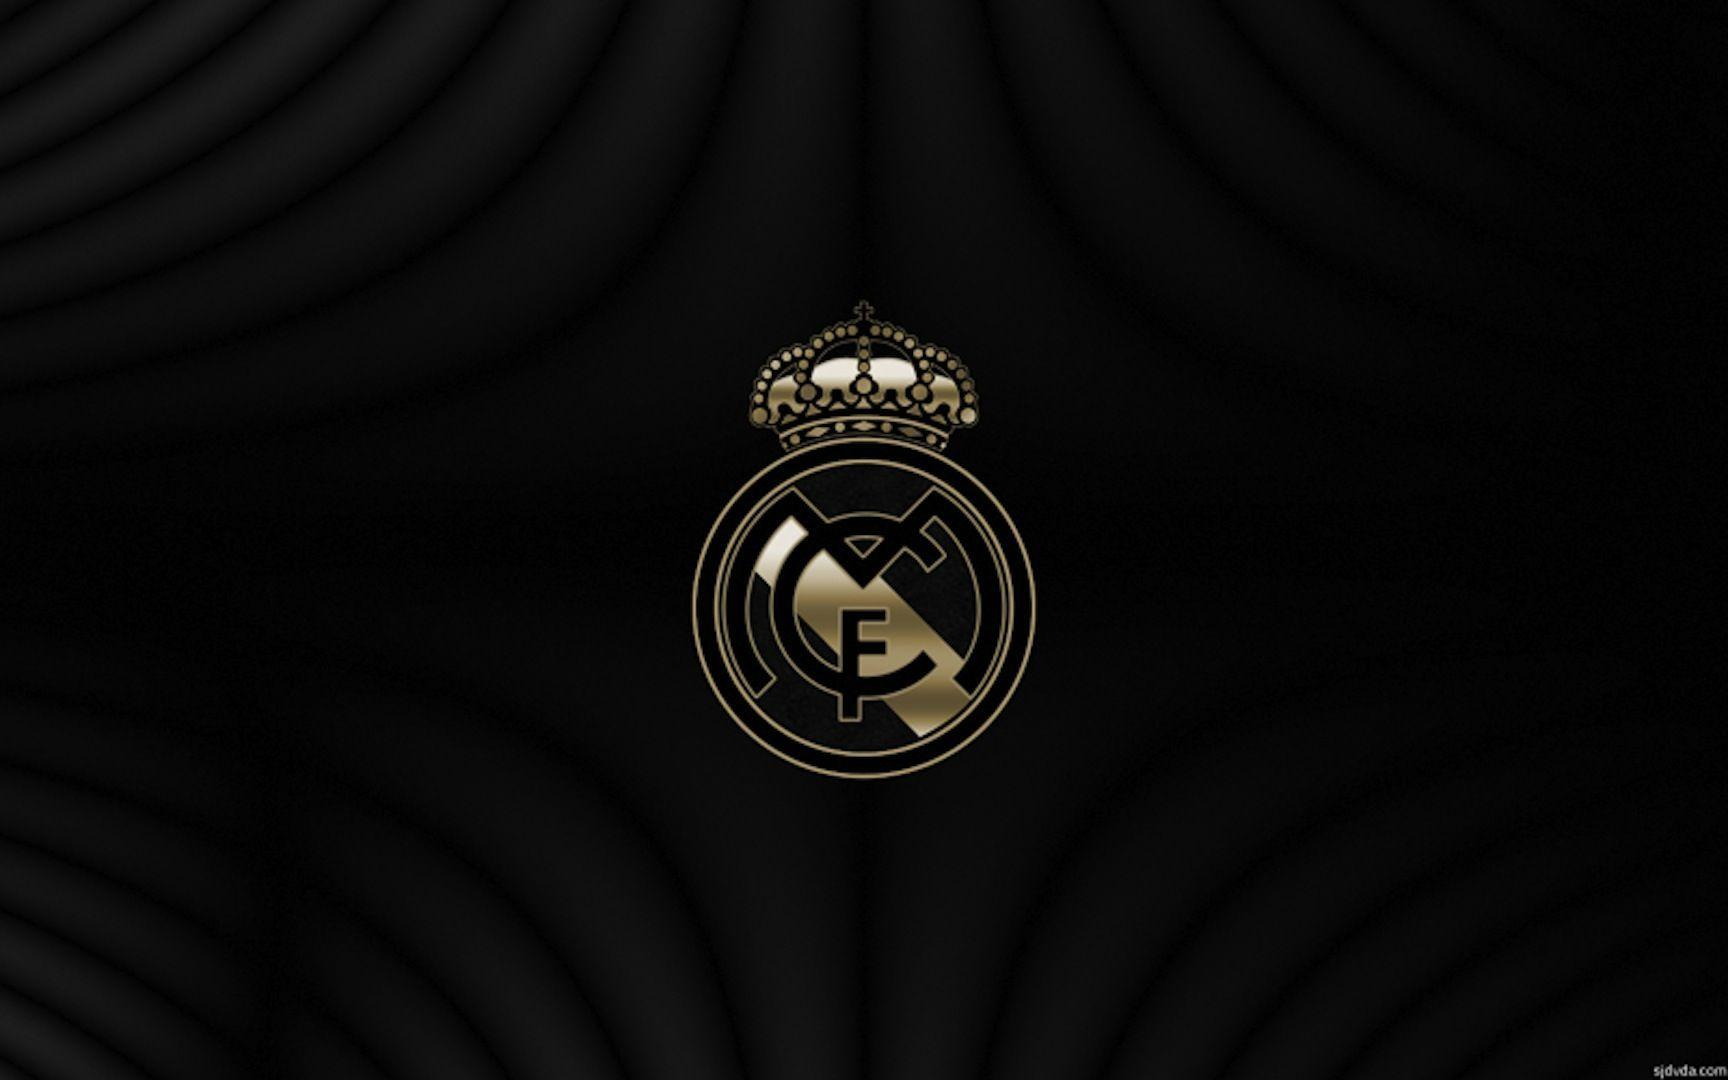 Real Madrid Wallpapers Full Hd 2017 Wallpaper Cave